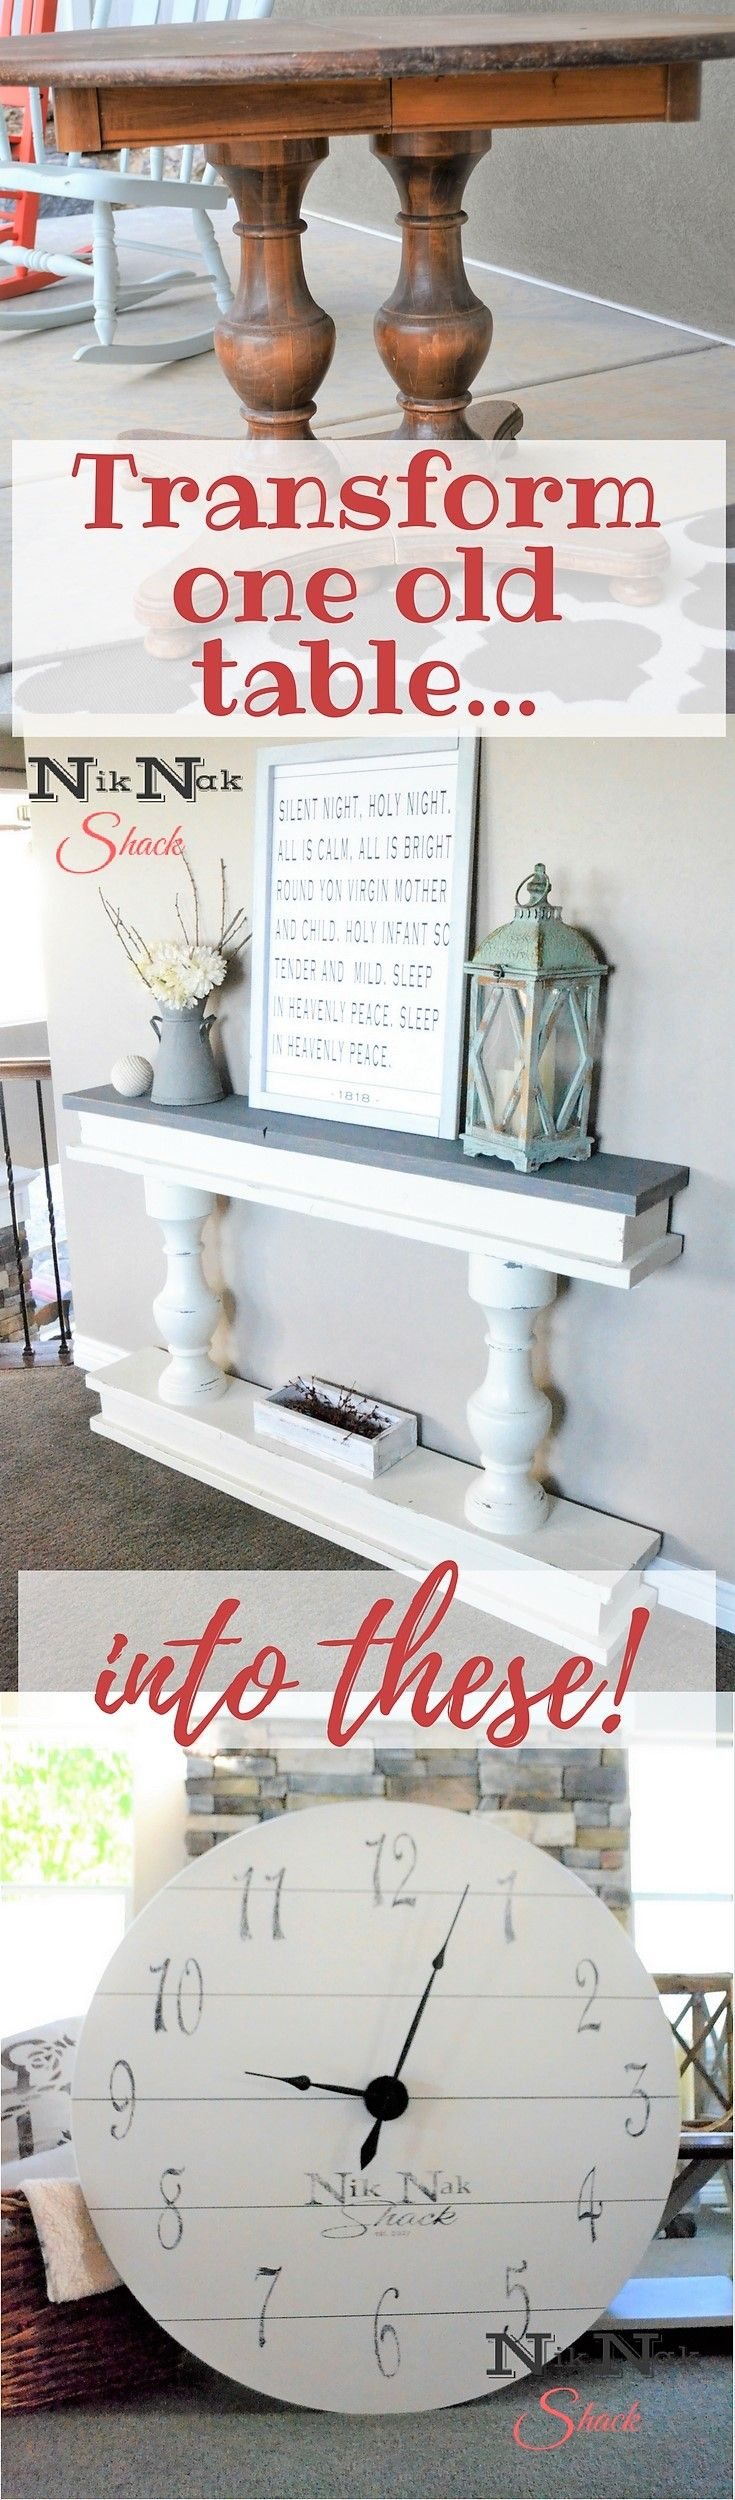 DIY Furniture- Make a new table and clock out of an old table! #diyfurniture #furnituremakeover #farmhousefurniture